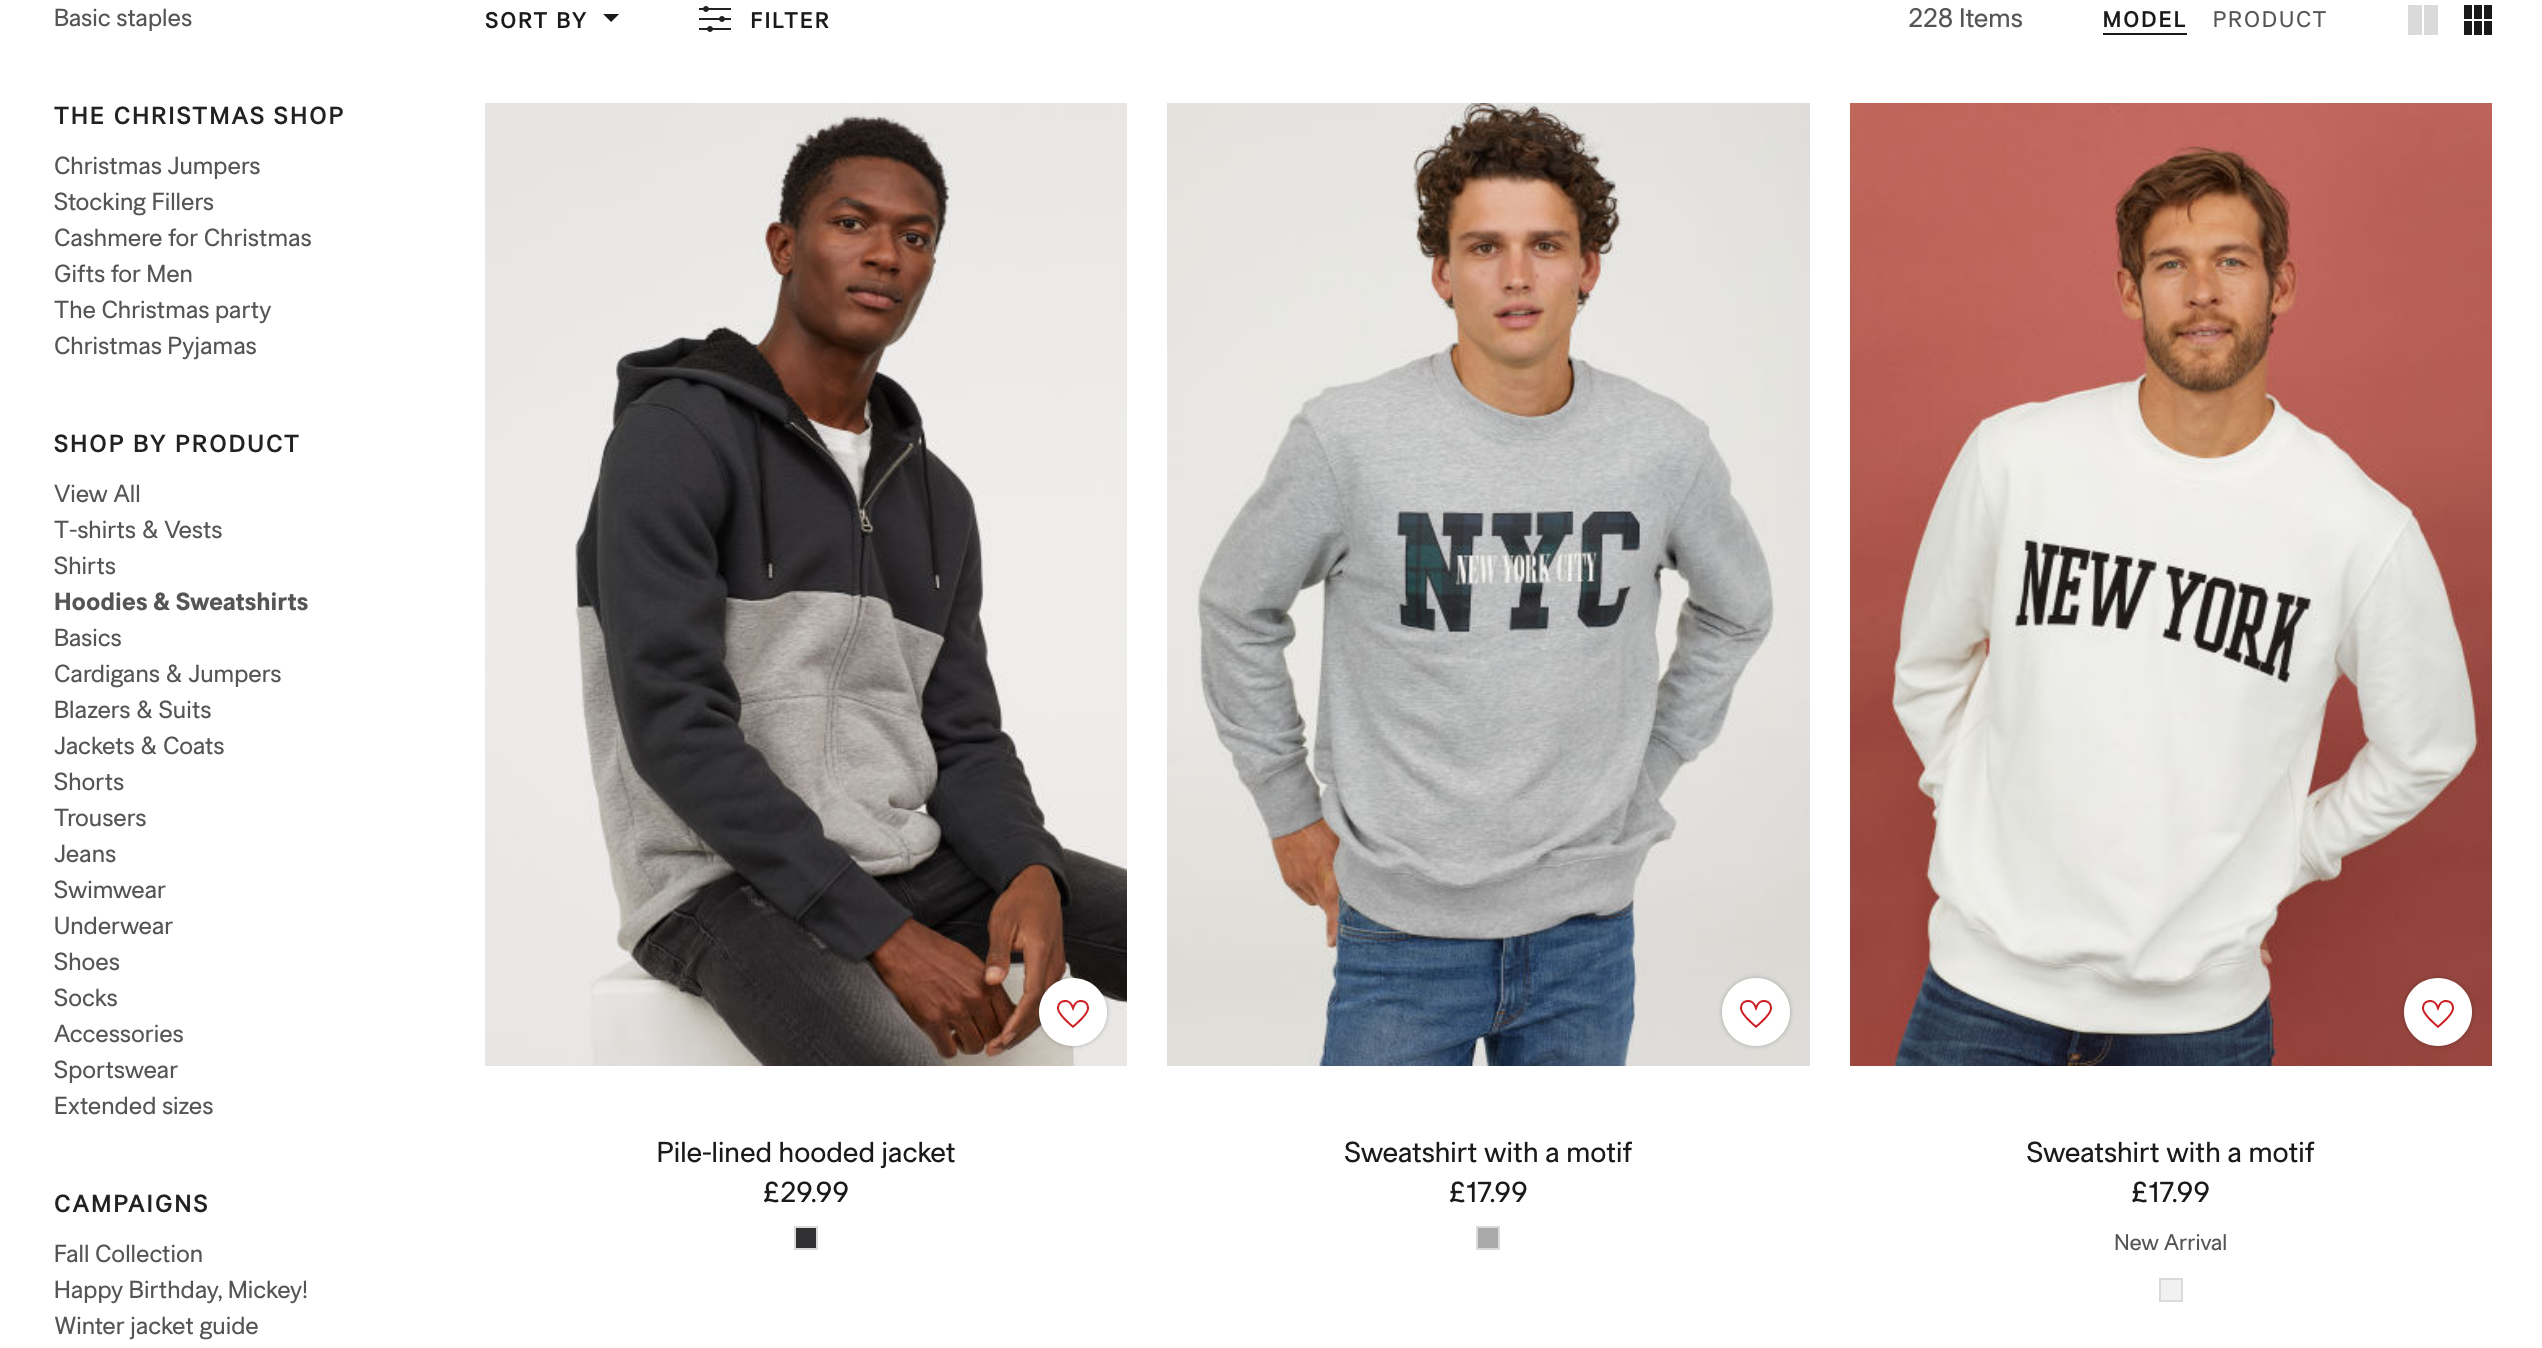 H&M fashion product listings page